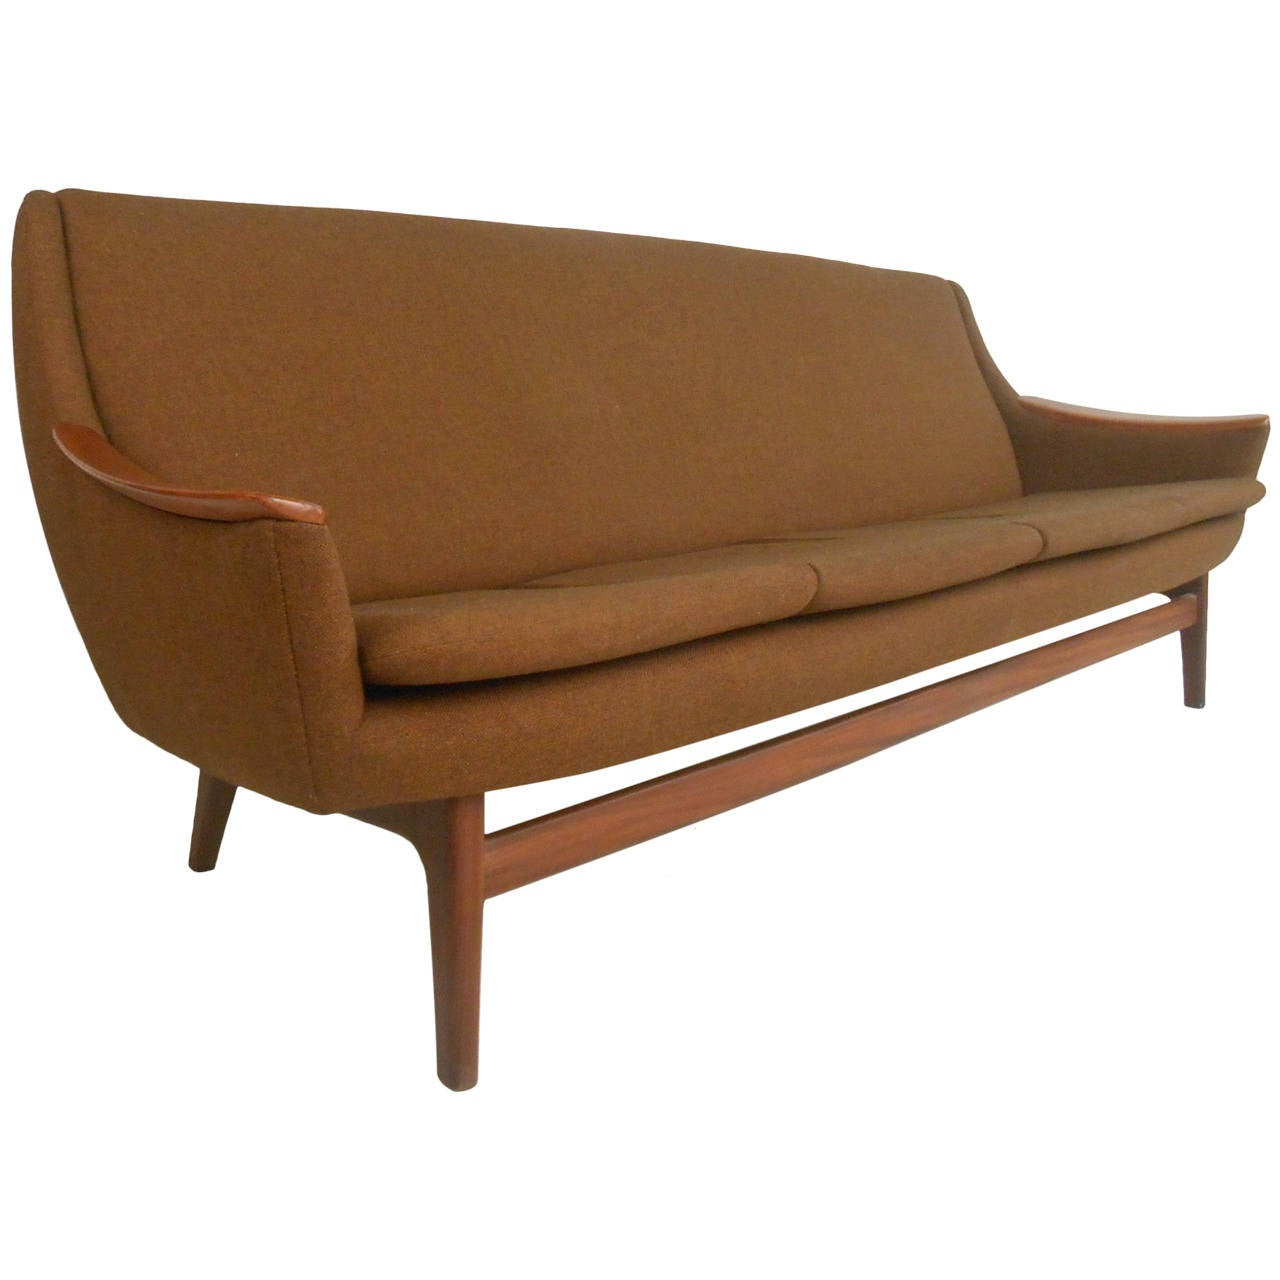 Long Scandinavian Modern Sofa